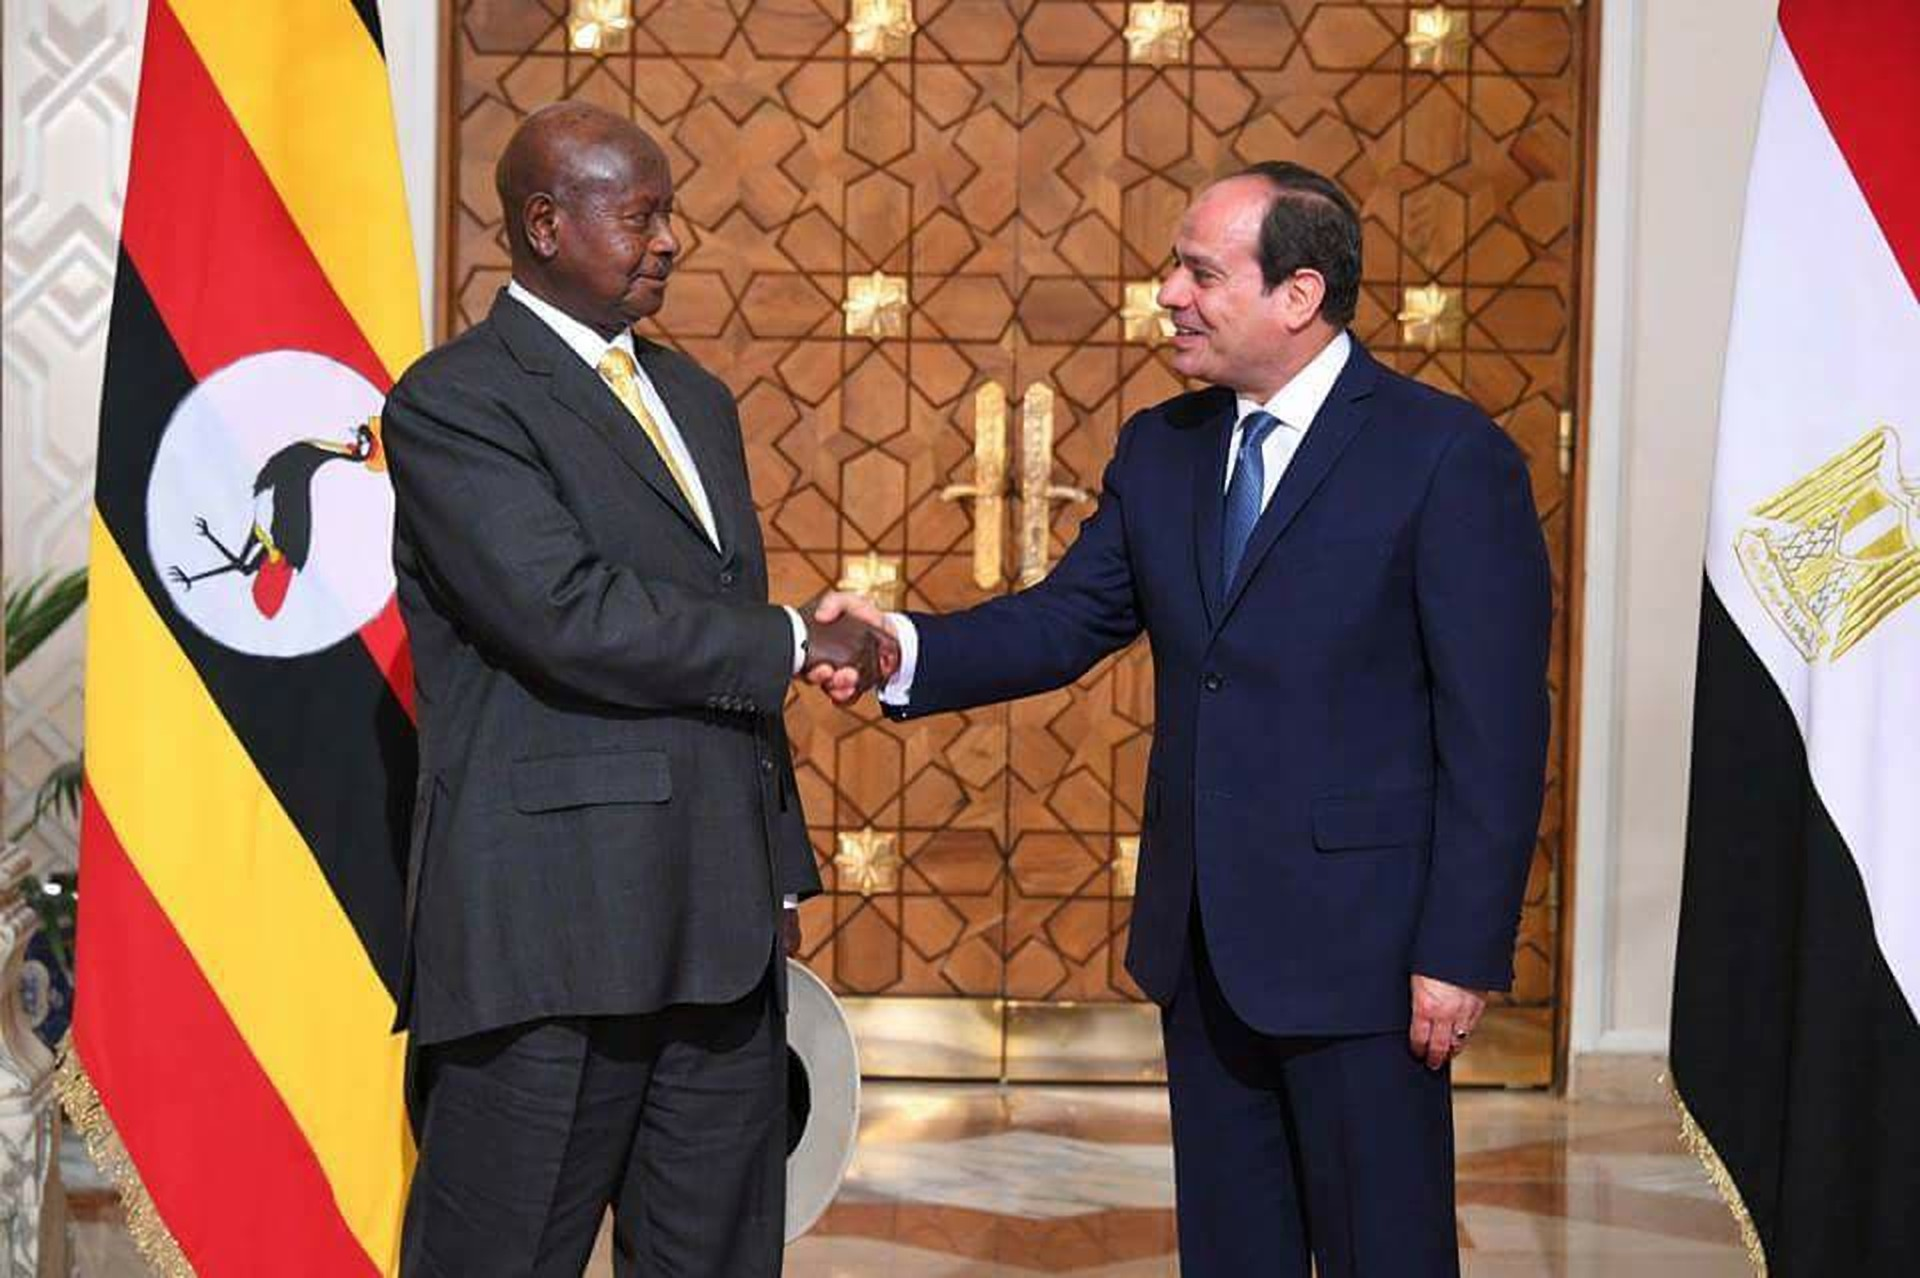 President Museveni and his Egyptian counterpart Abdel Fattah El-Sisi discussed a several bilateral issues between the two nations (COURTESY PHOTO)